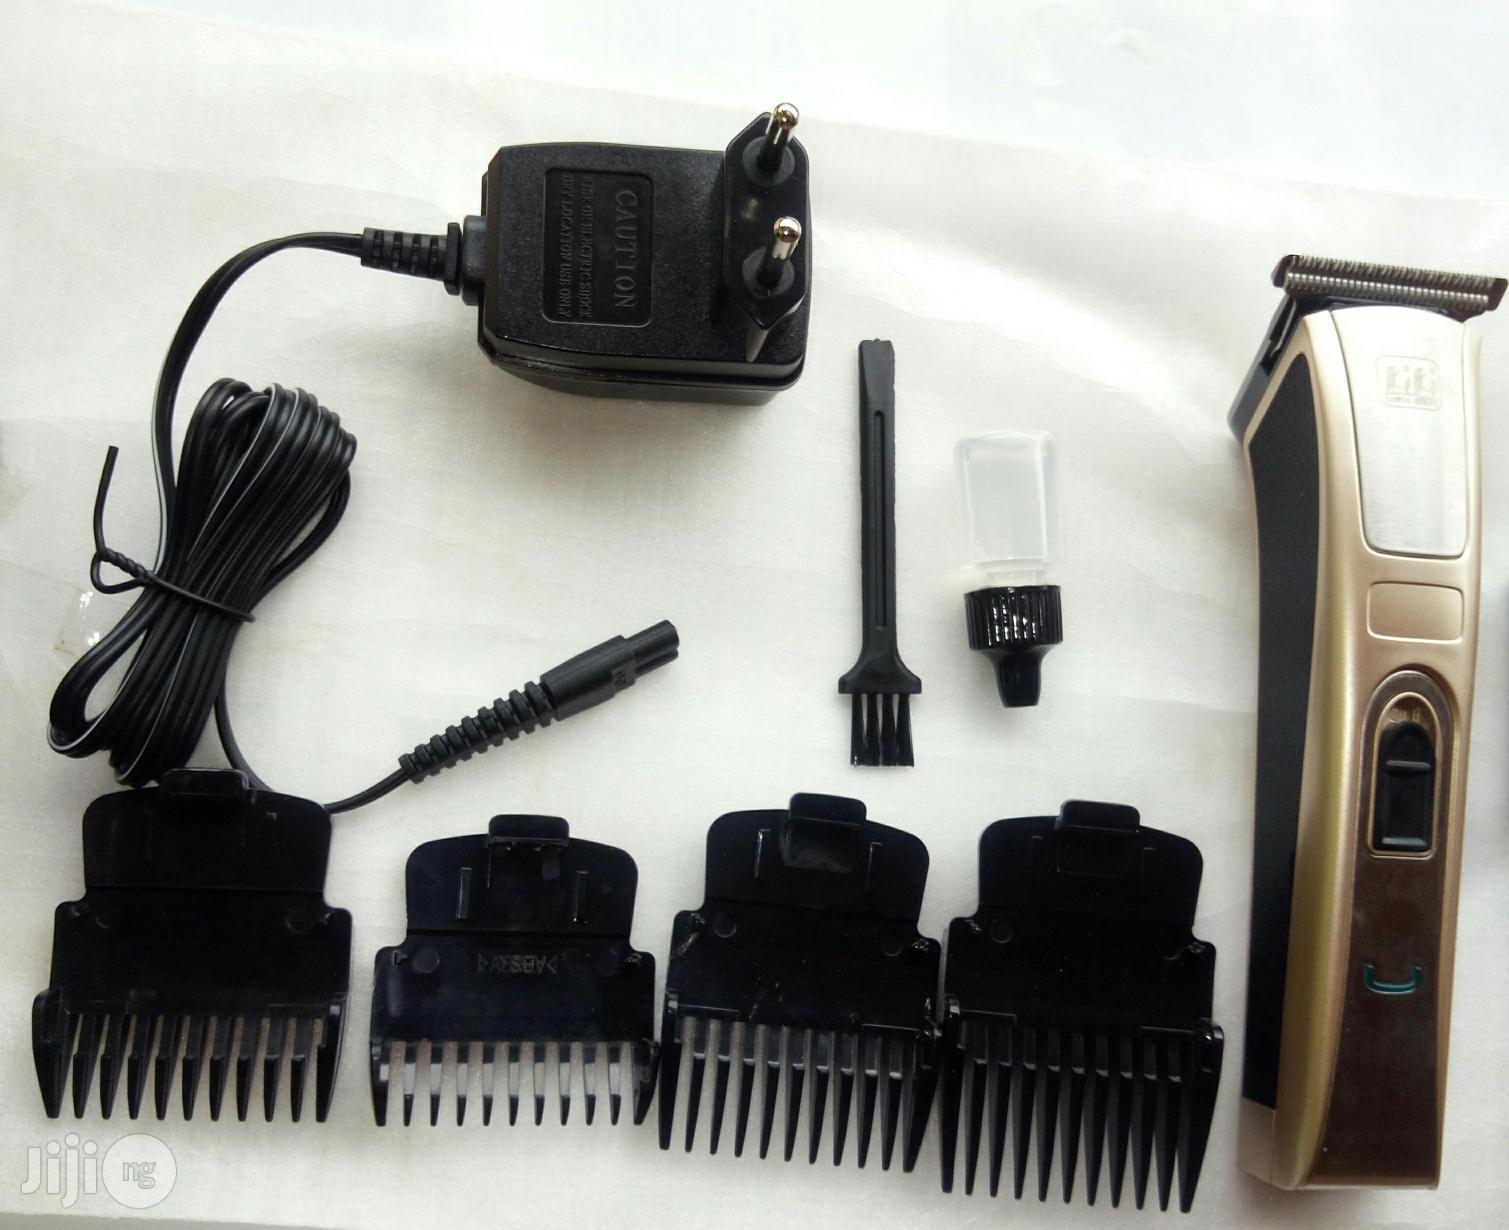 Brand New Rechargeable Hair Clipper | Tools & Accessories for sale in Alimosho, Lagos State, Nigeria